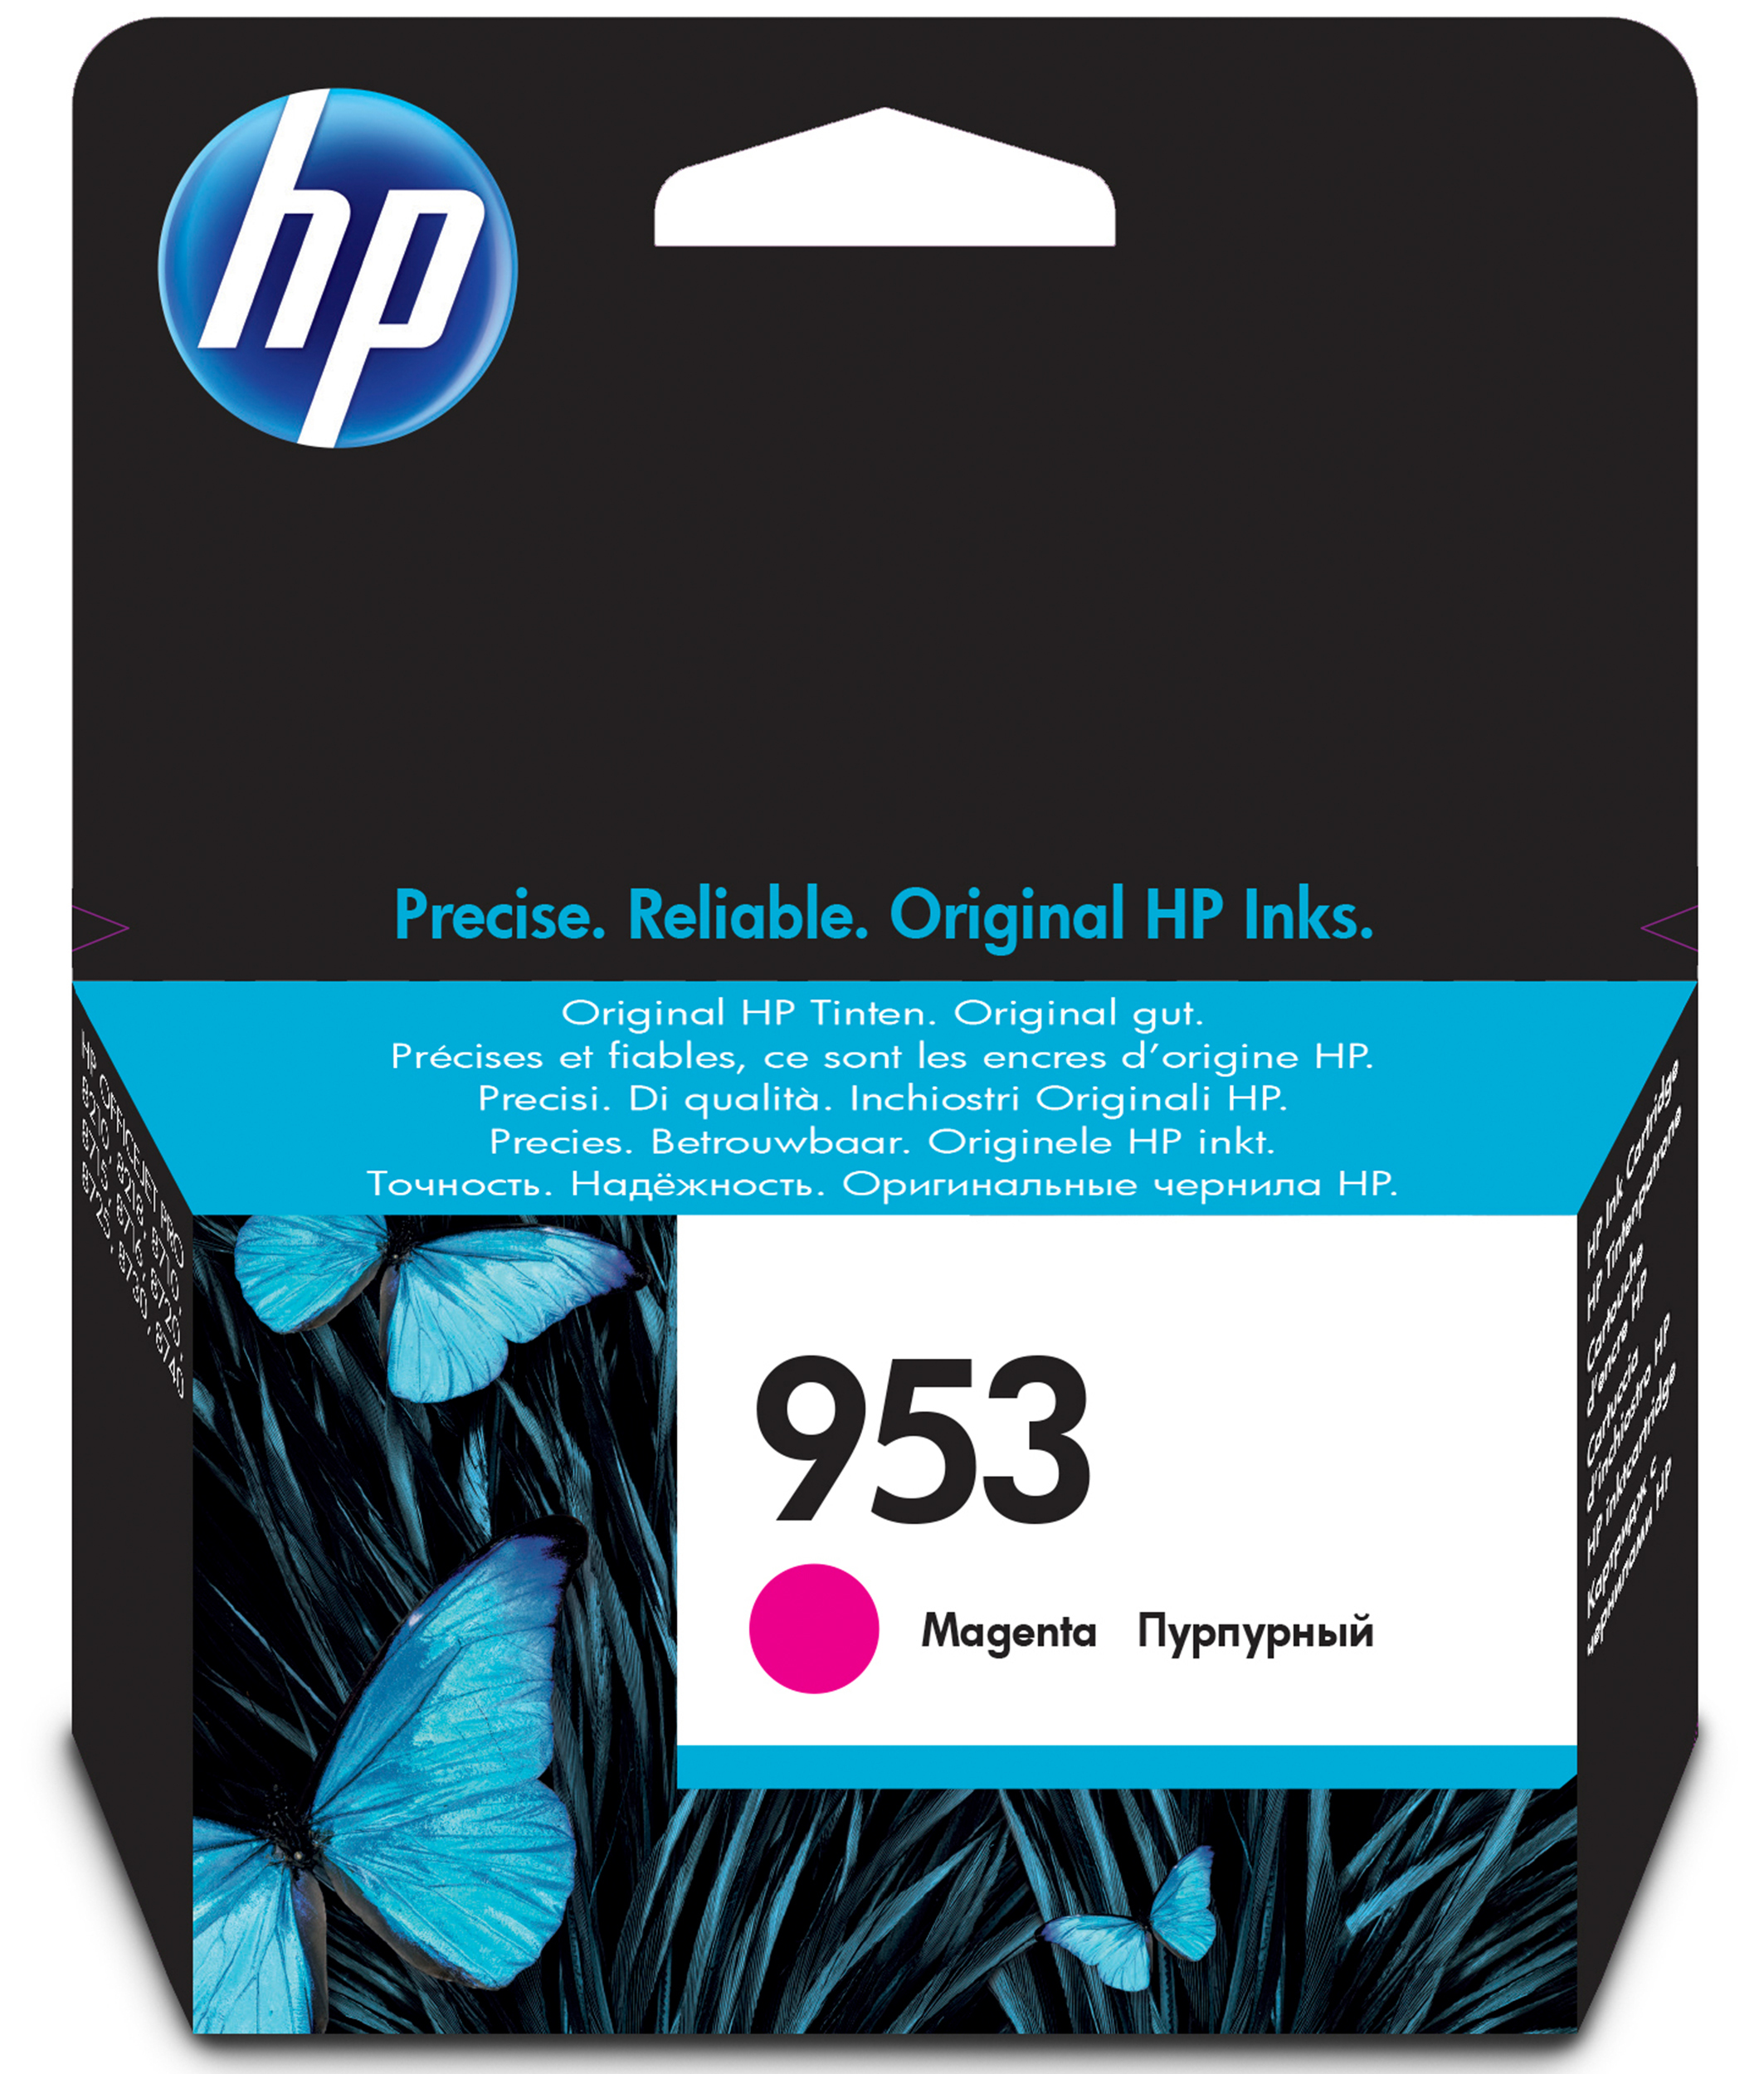 HP 953 - 10 Ml - Magenta - Original - Ink Cartridge - For Officejet Pro 8210, 8710, 8715, 8718, 8719, 8720, 8725, 8730, 8740, 8745 F6U13AE#BGX - C2000